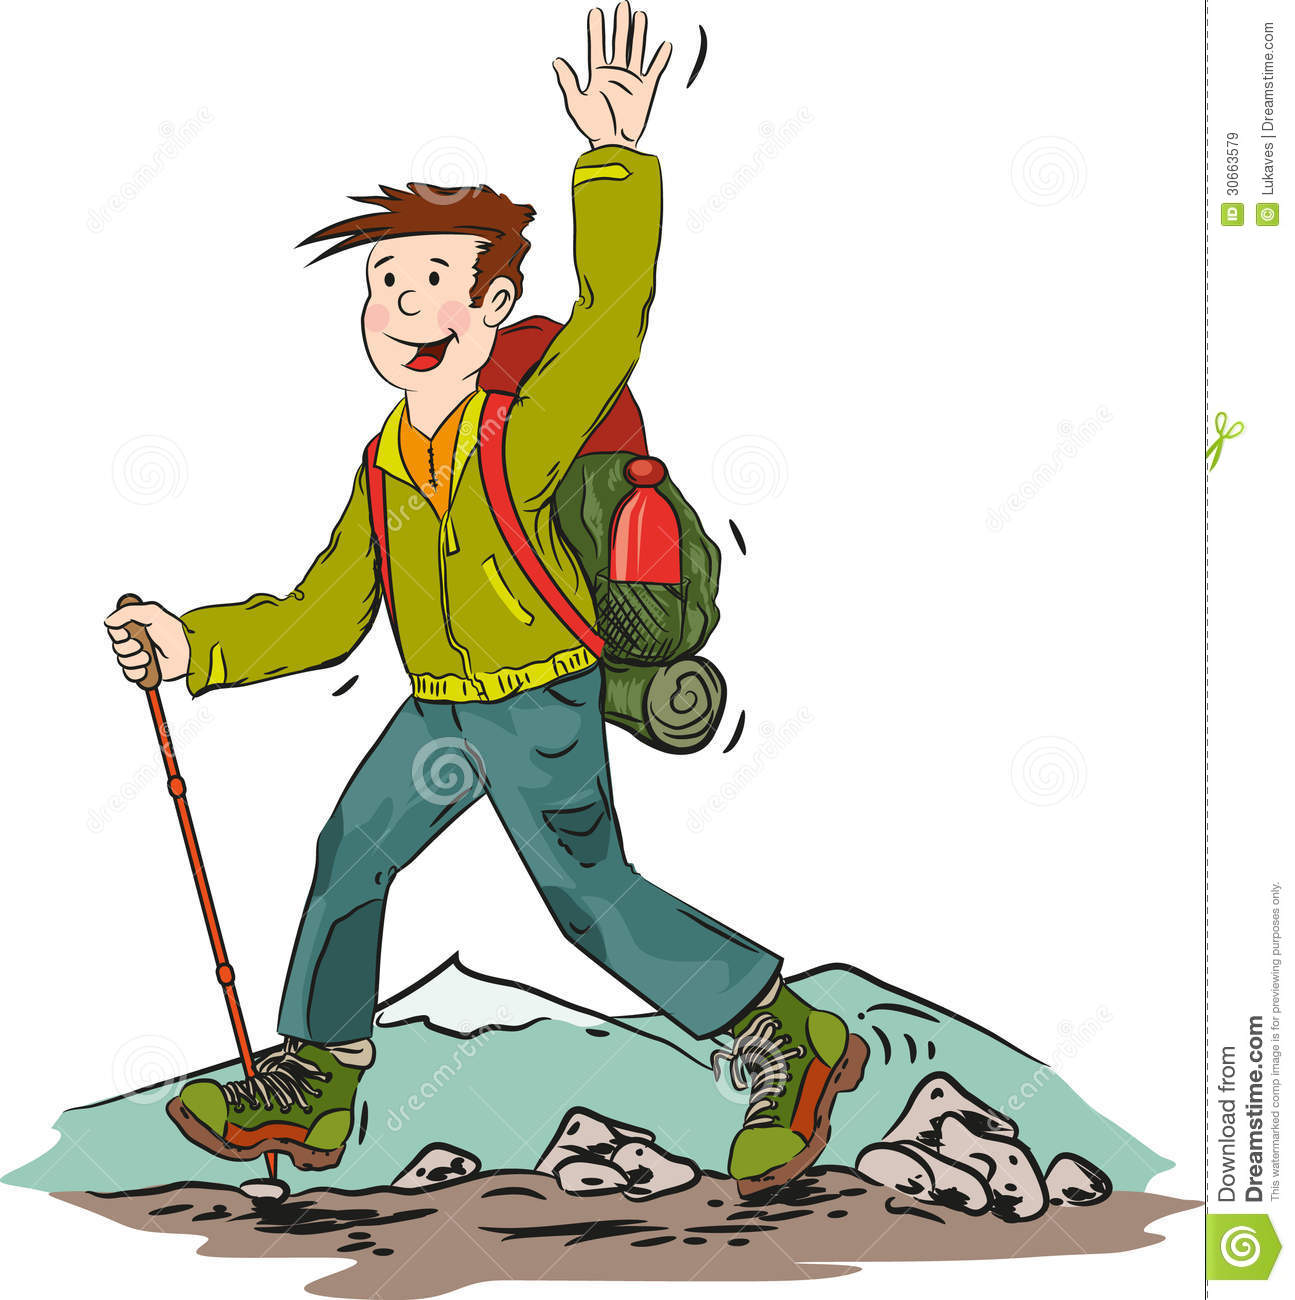 Hike cliparts free download. Hiker clipart mountain man